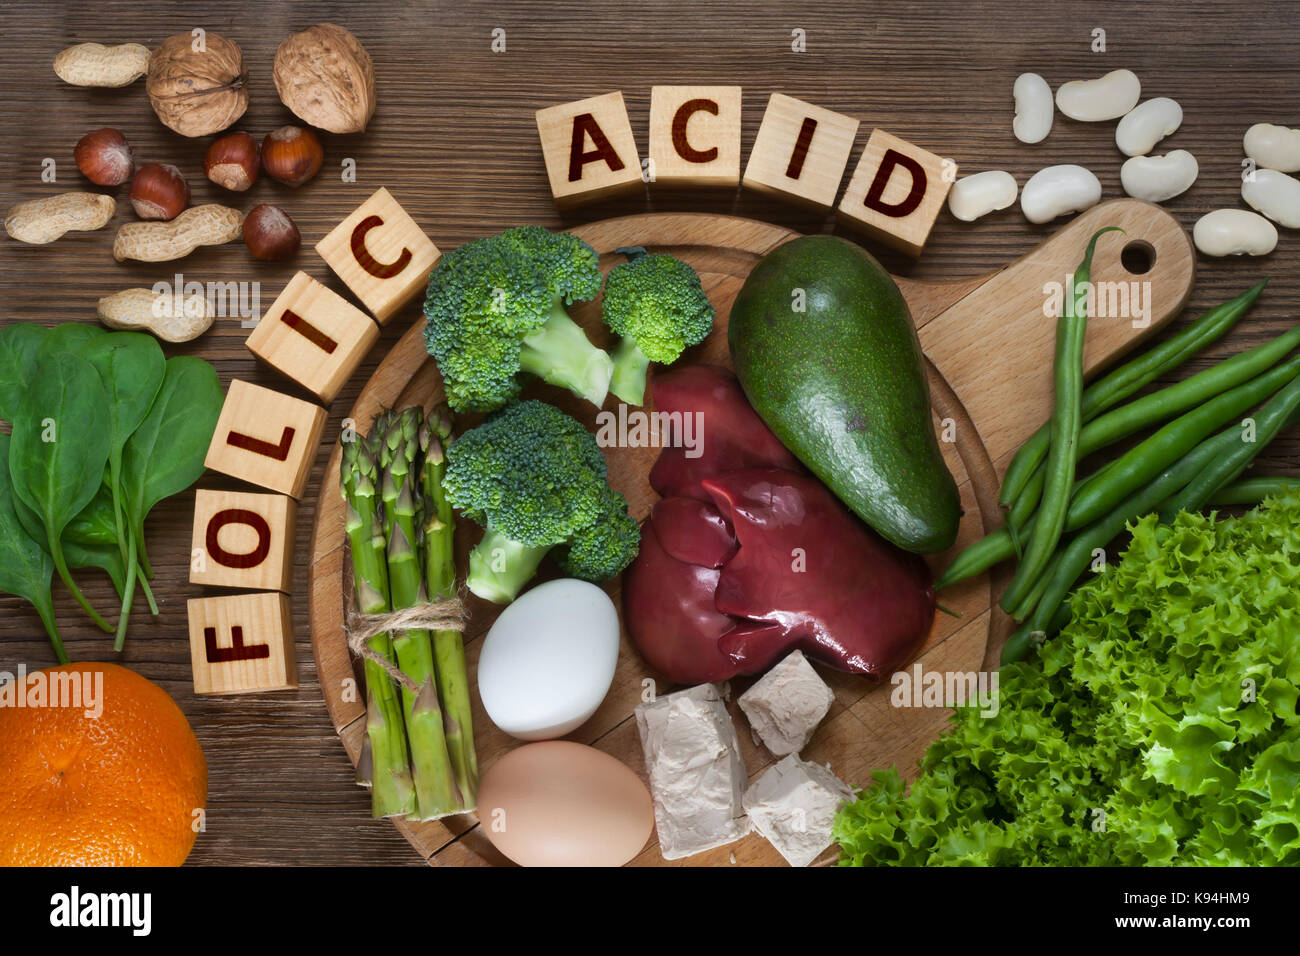 Natural sources of folic acid as liver, asparagus, broccoli, eggs, salad, avocado, yeast, nuts, spinach, orange - Stock Image